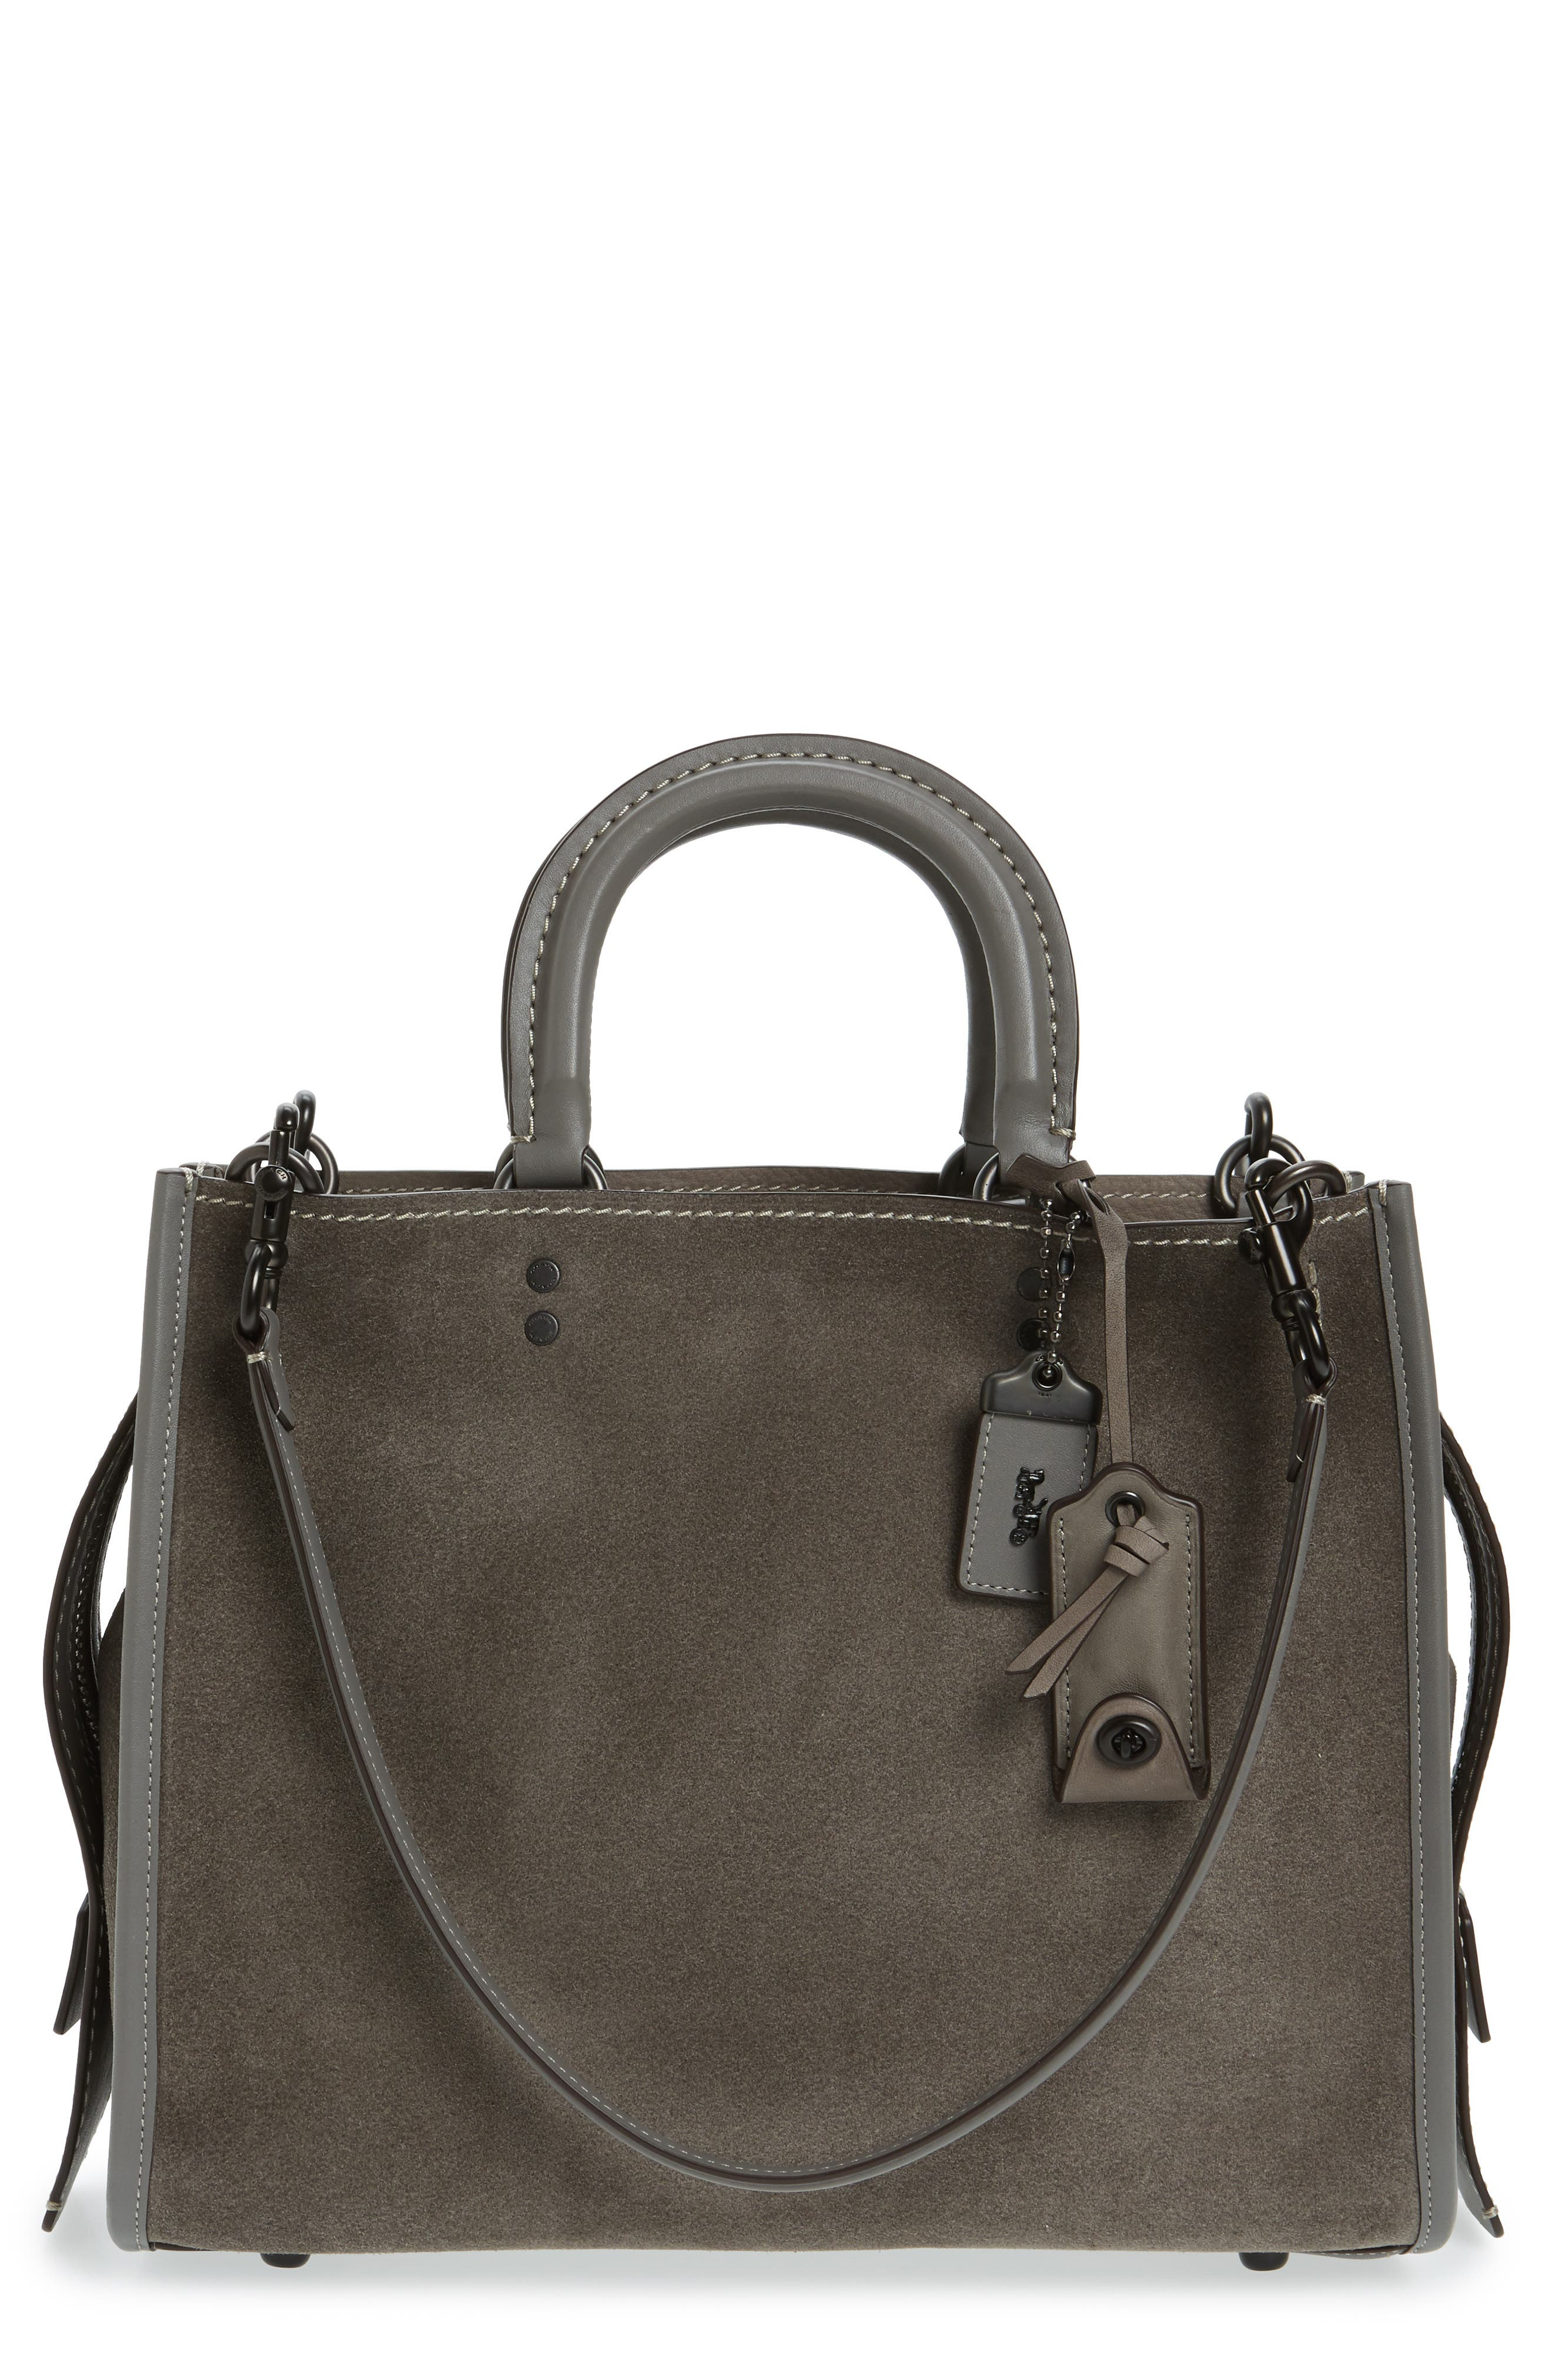 Alternate Image 1 Selected - COACH 1941 'Rogue' Leather Satchel